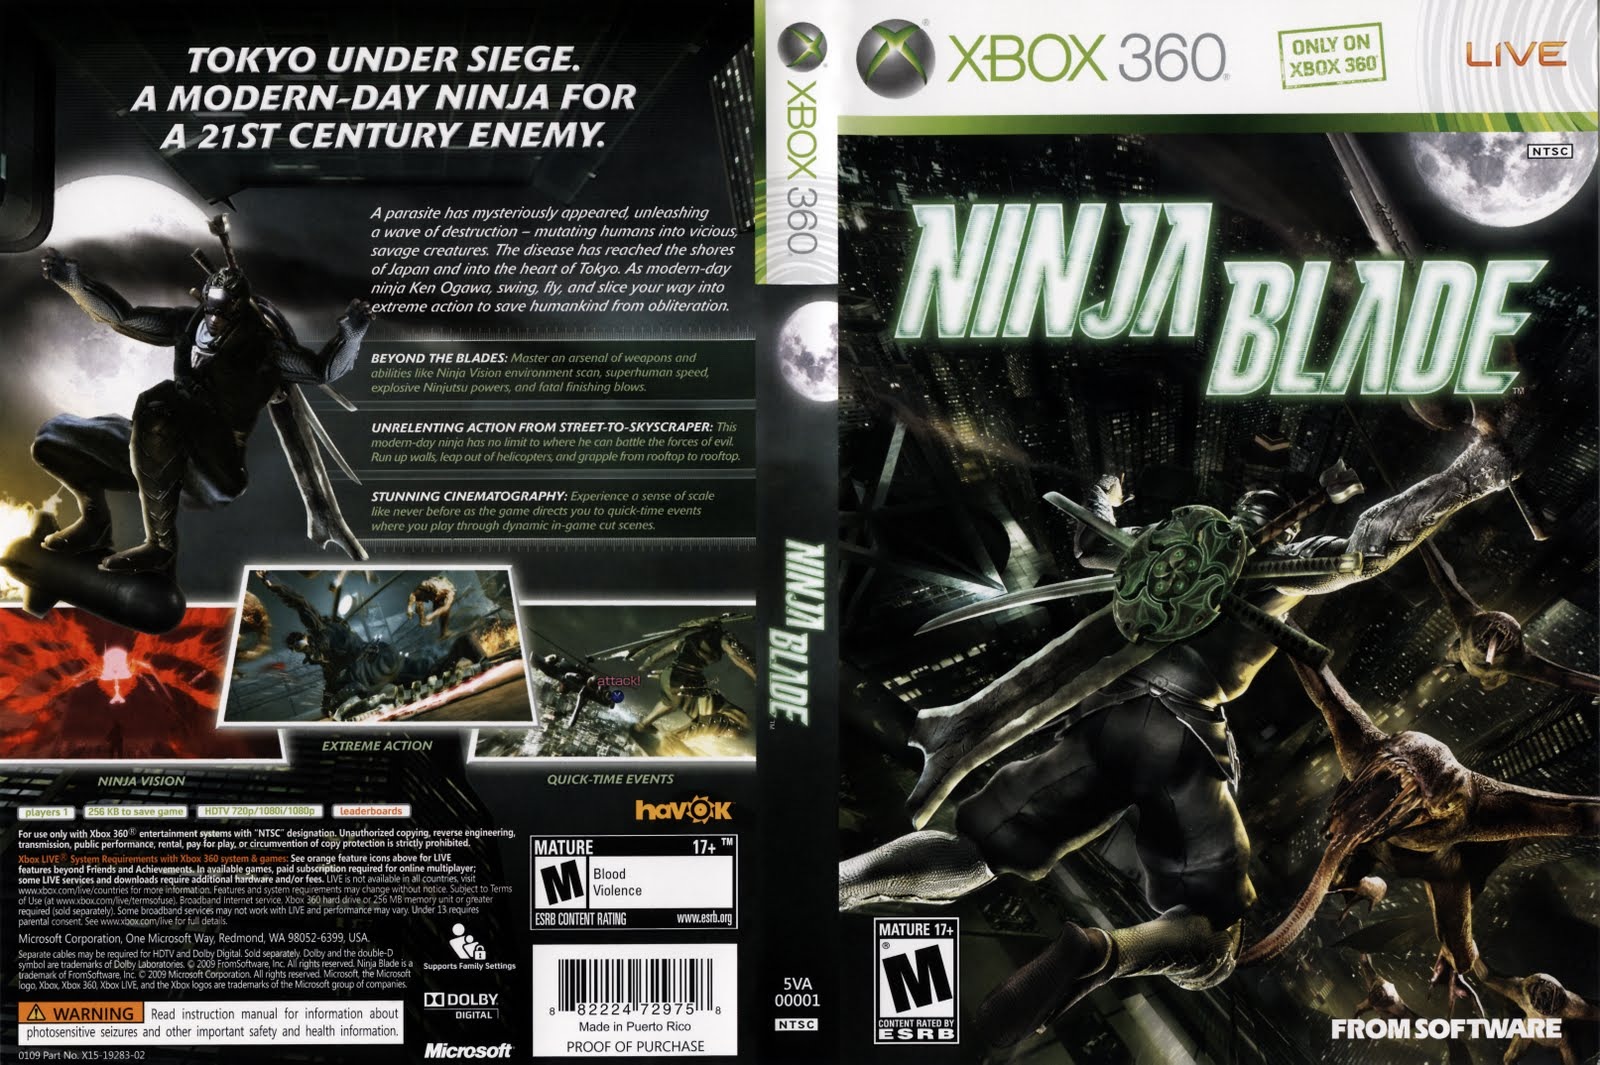 Games Covers: Cover Ninja Blade - Xbox 360